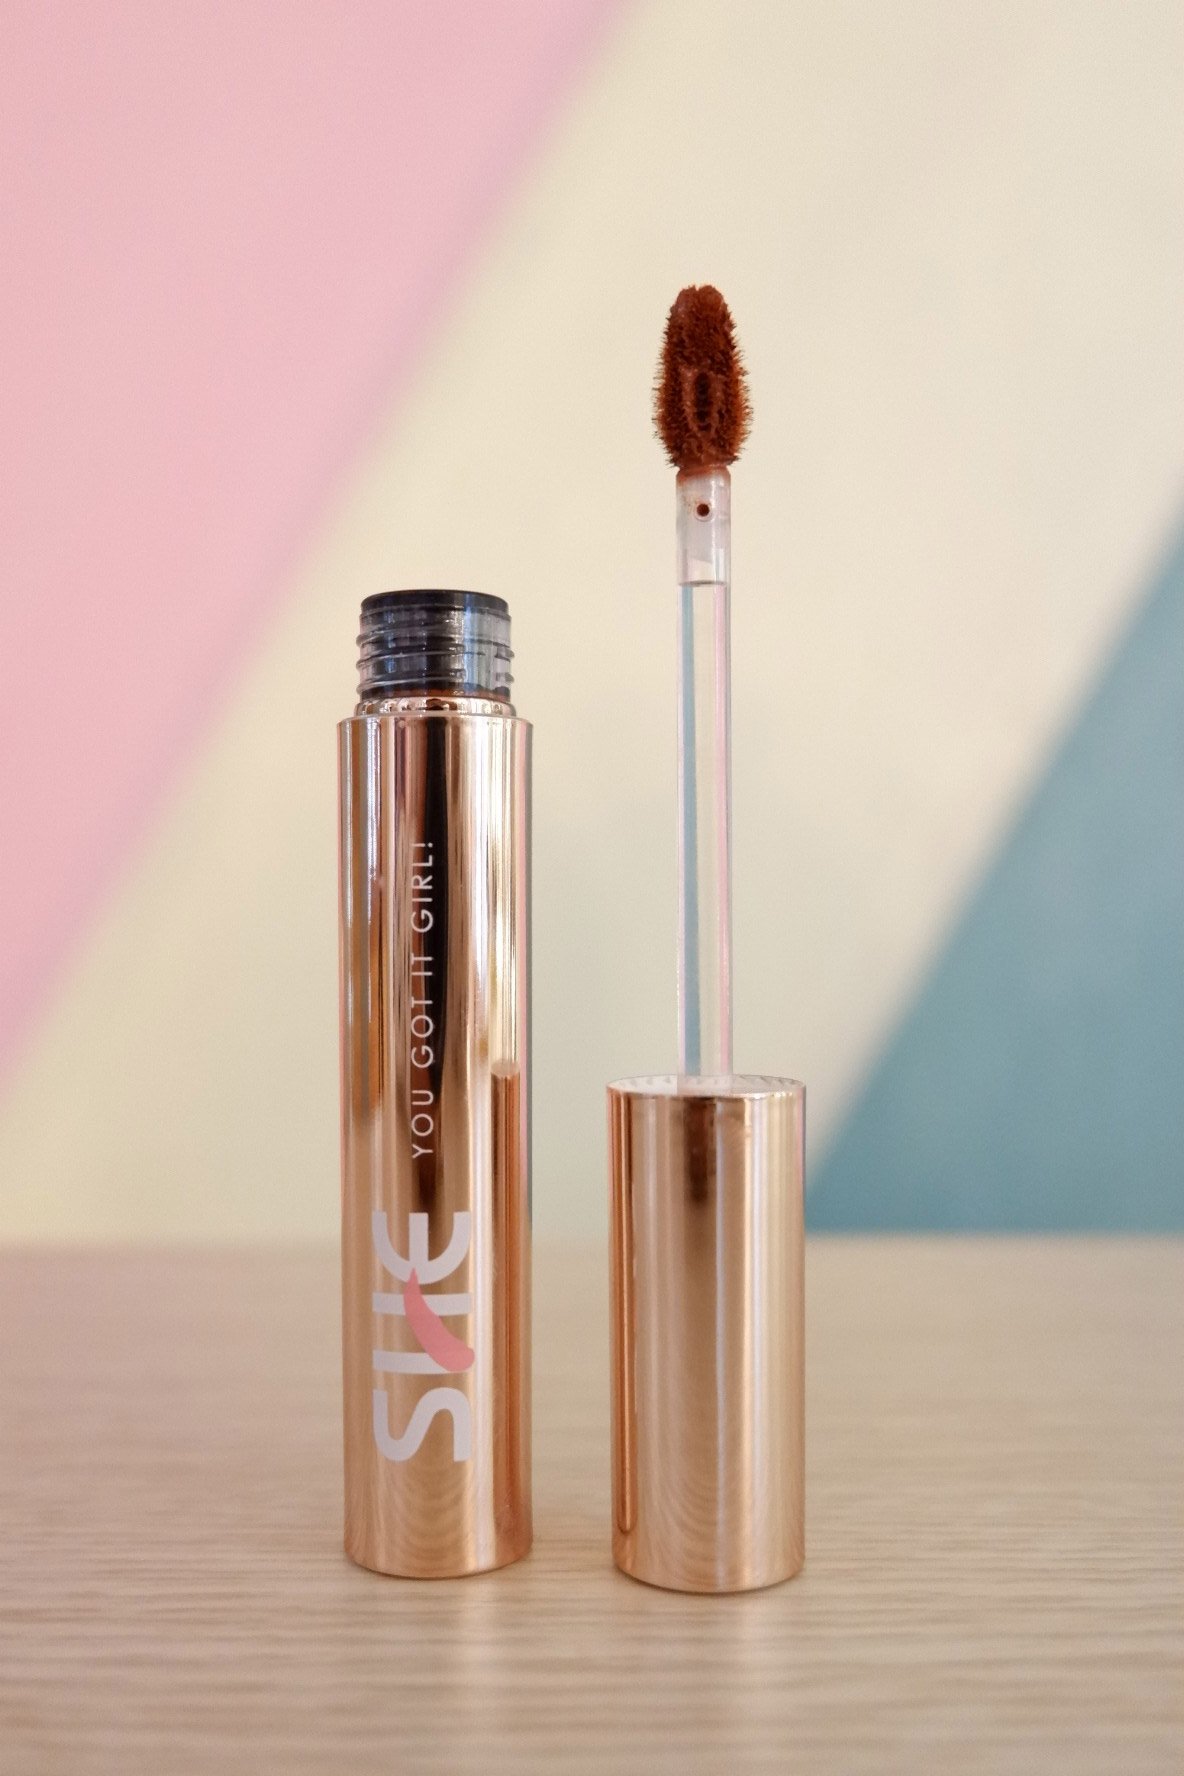 About - SHE Cosmetics